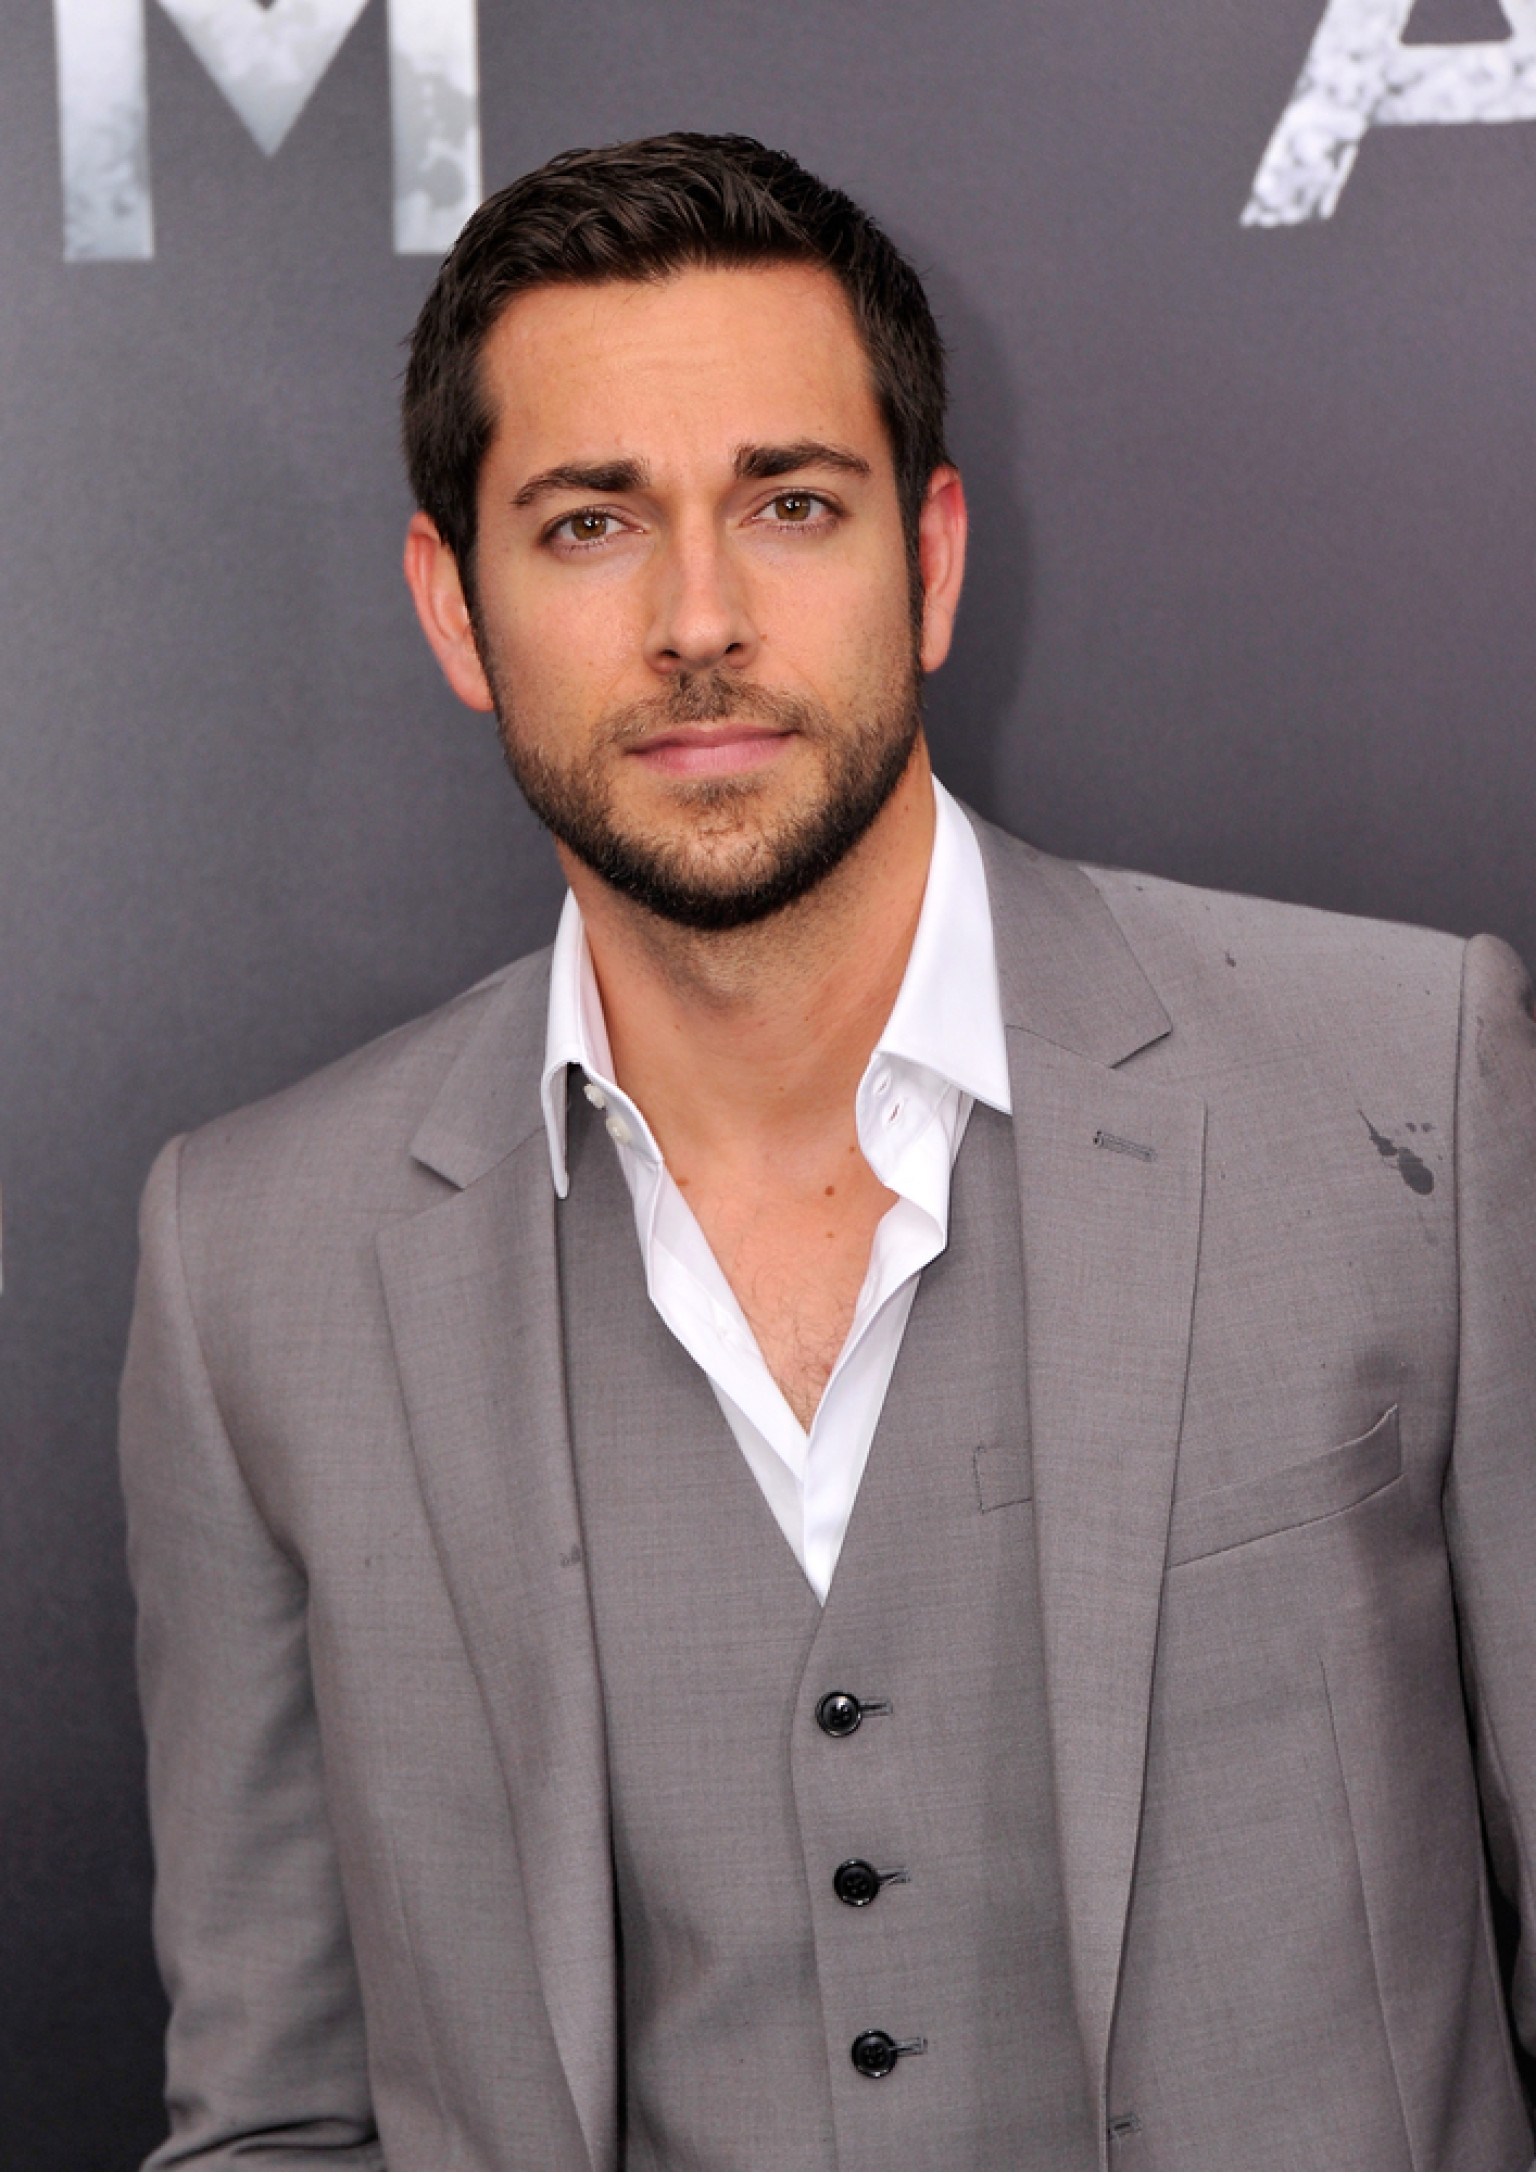 zachary levi tumblr